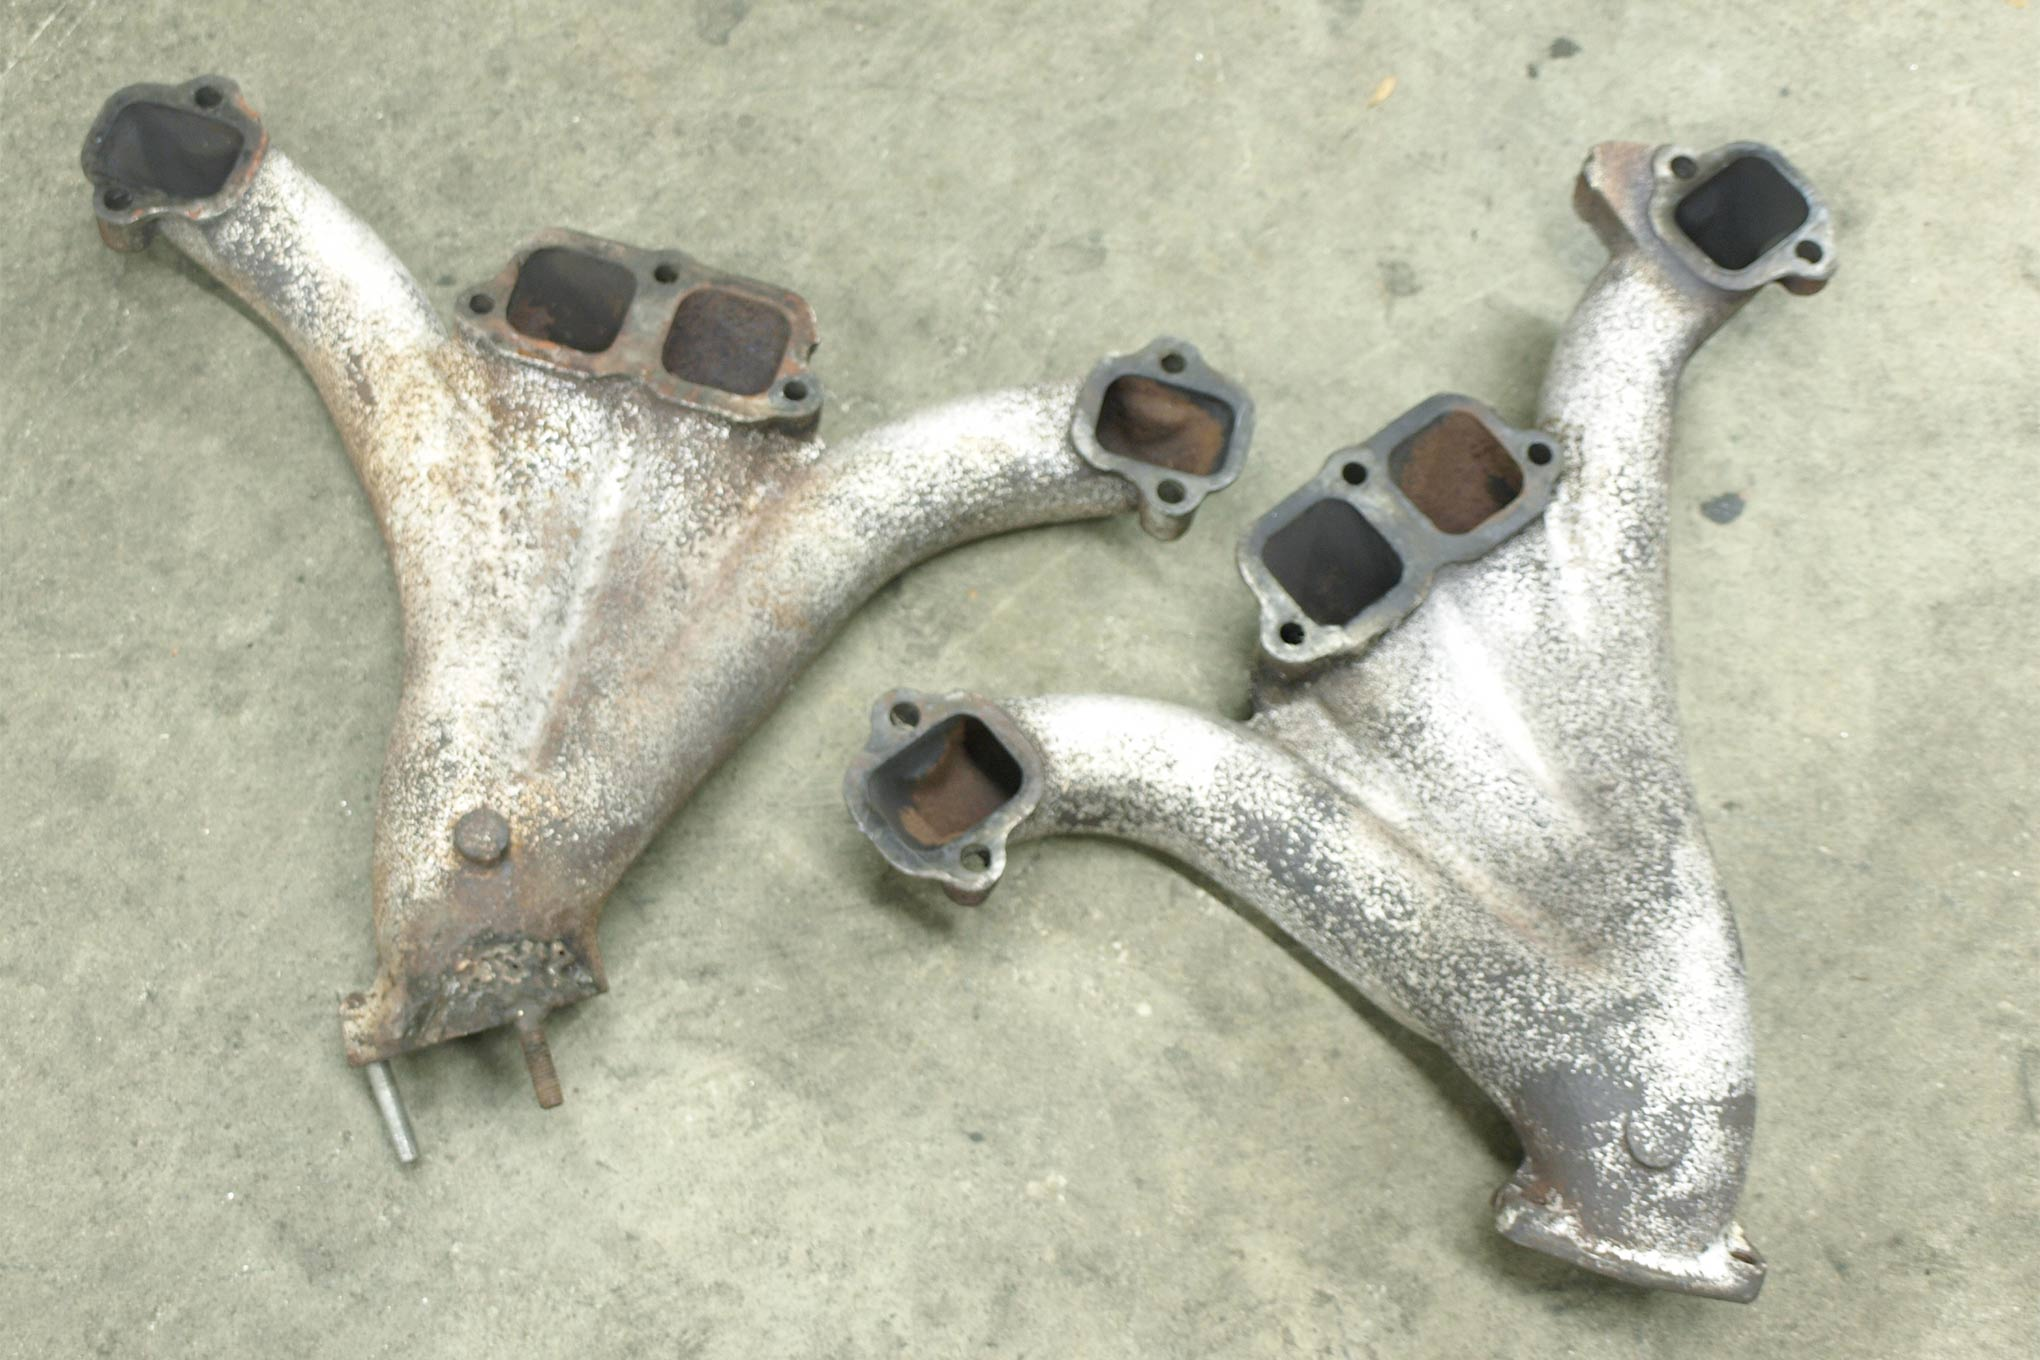 Like the competing Ford 427, Pontiac 421 Super Duty, and Mopar 426 Max Wedge, Chevy whipped up a nifty set of high-flow cast-iron exhaust manifolds for its early 1960s Super Stock warrior, the 409. At 13.0 and 11.4 pounds (driver/passenger), they're lighter than they look. Several sources offer tube steel headers, and Bob Walla racing even makes aluminum copies of the stock iron castings for the ultimate in trickery. With thermal barrier coating applied inside, they're ready for daily use.